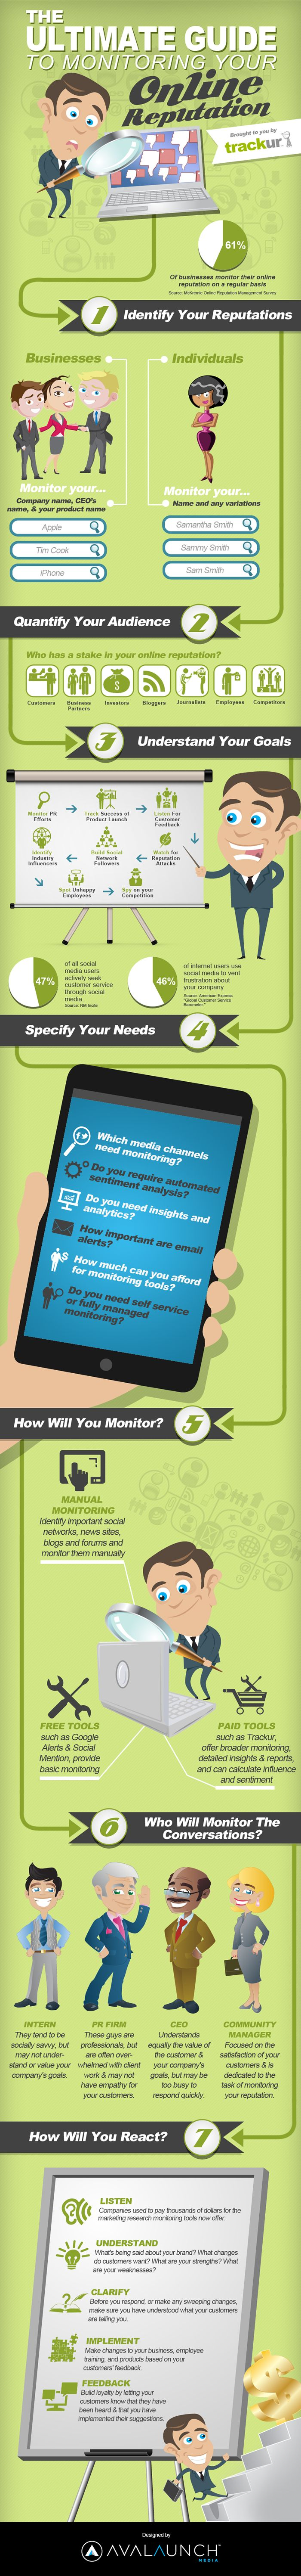 The Complete Guide to Online Reputation #Monitoring